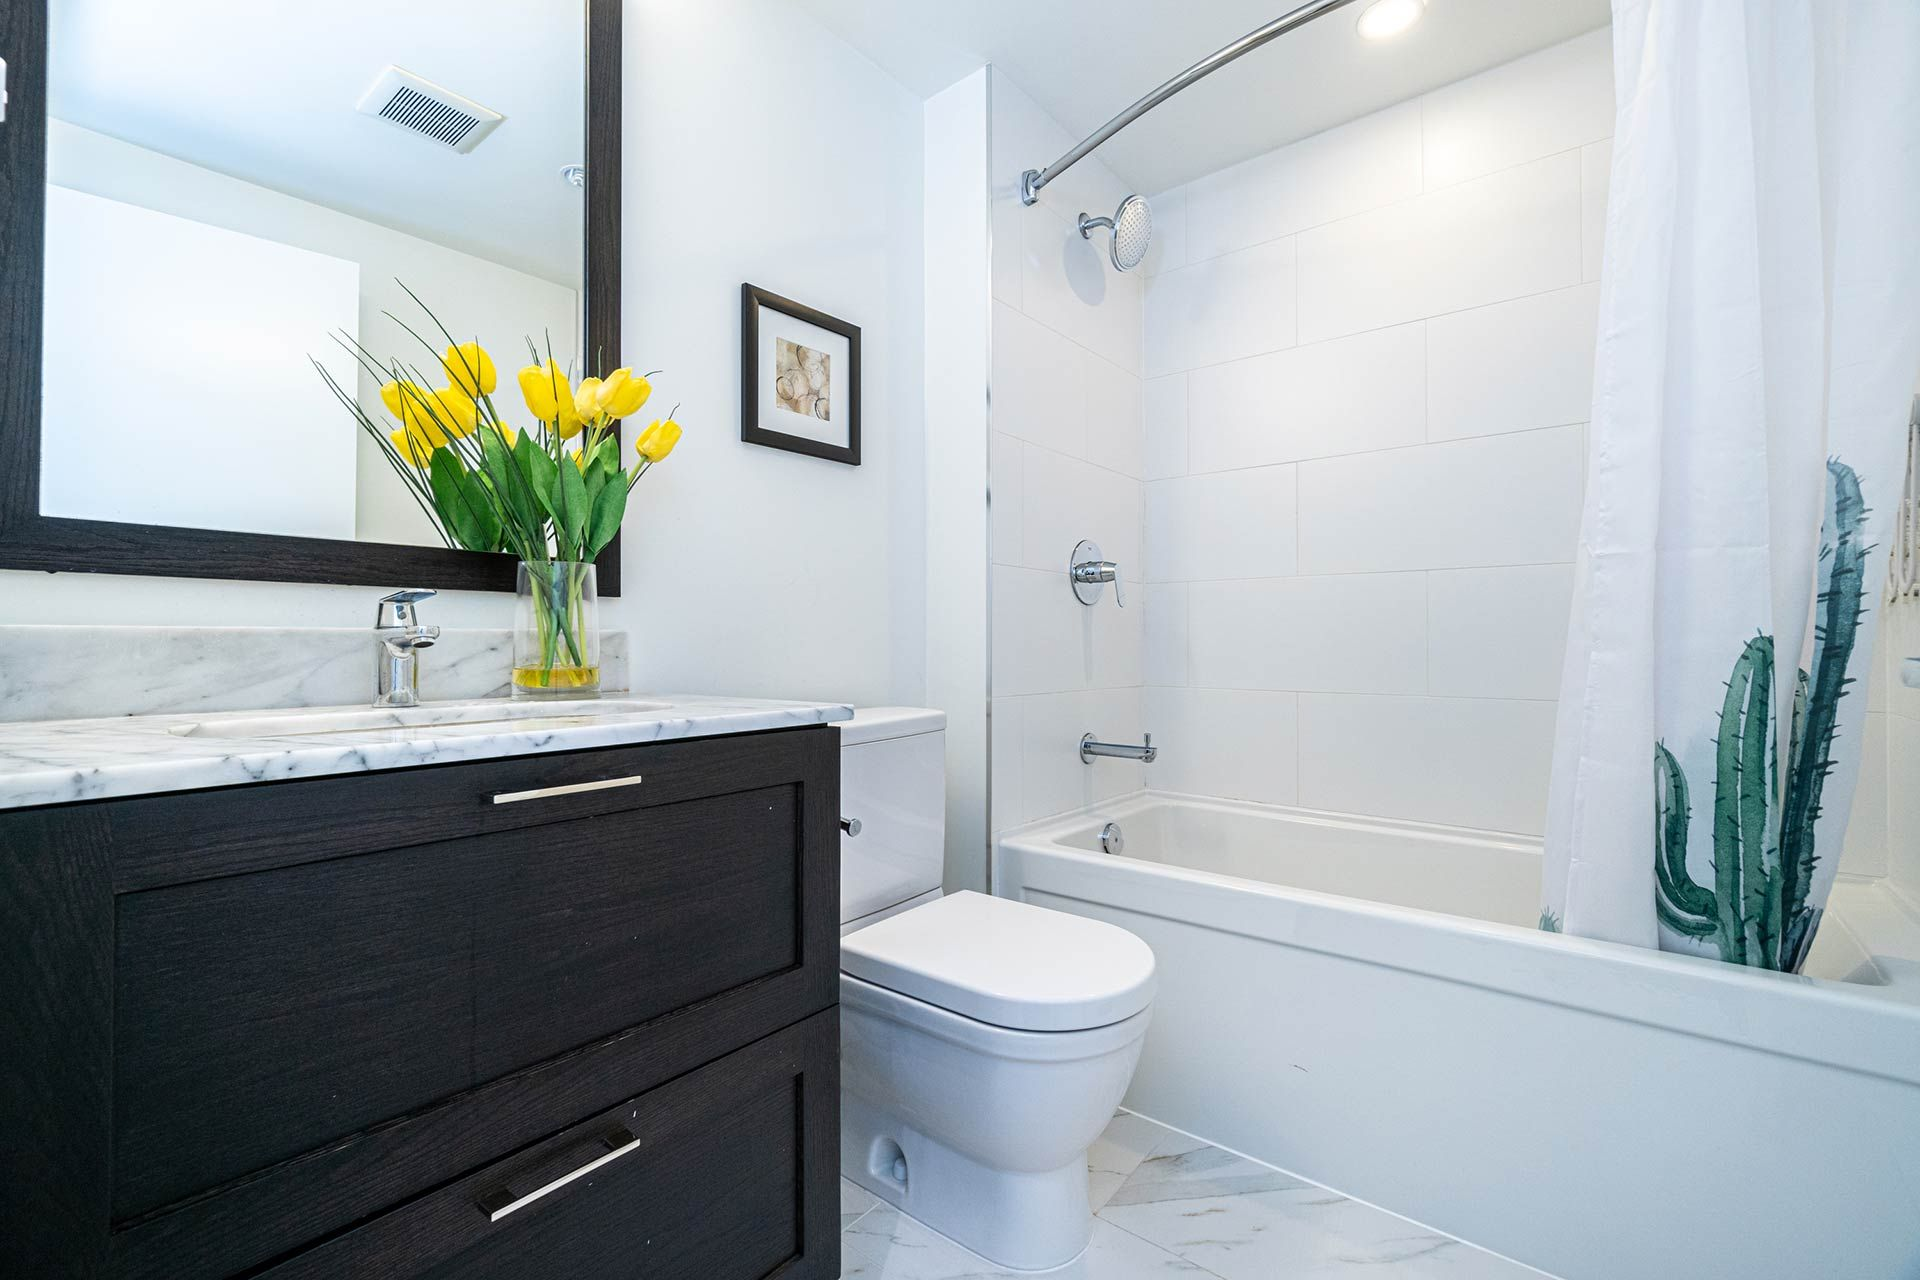 """Photo 32: Photos: 154 548 FOSTER Avenue in Coquitlam: Coquitlam West Townhouse for sale in """"BLACK + WHITE"""" : MLS®# R2587208"""